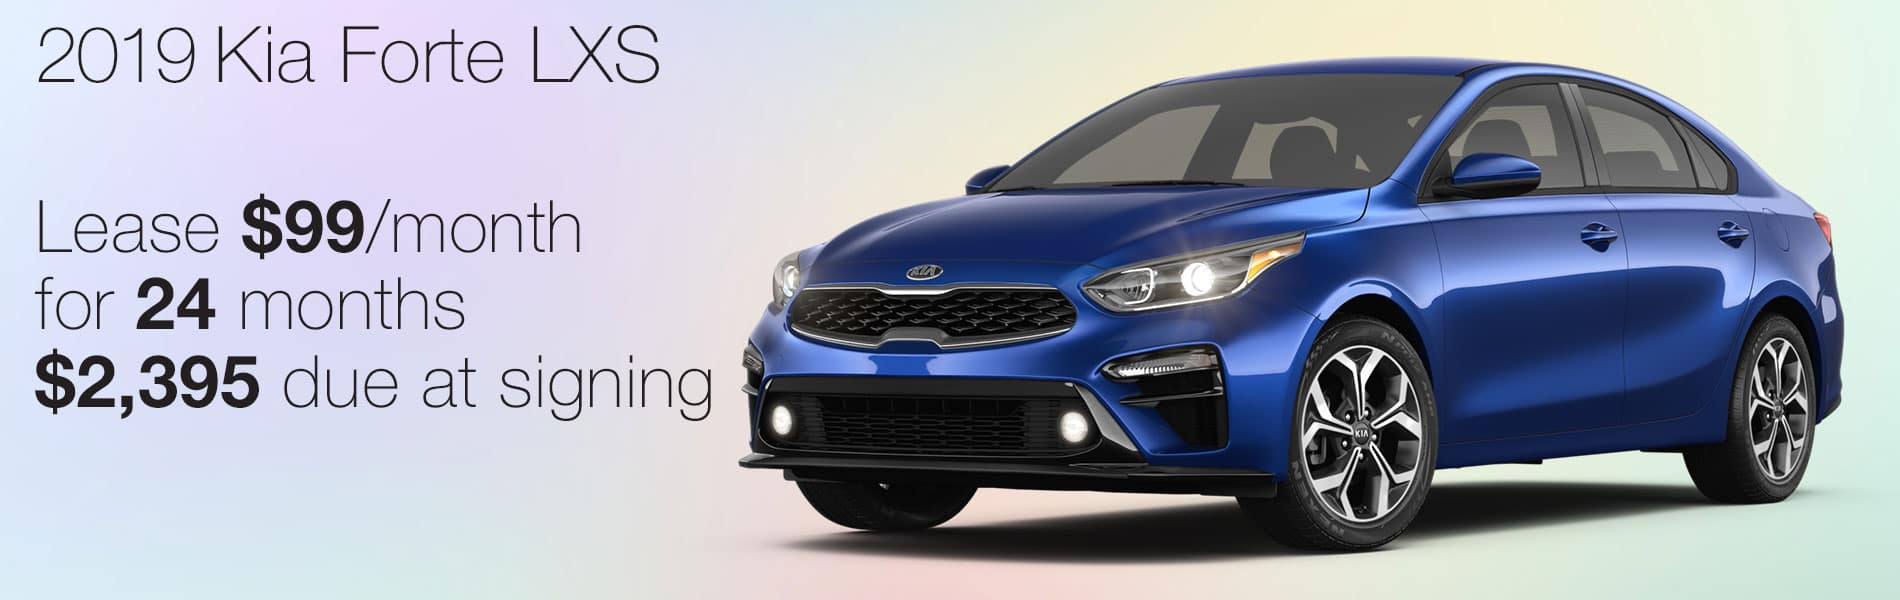 Lease a 2019 Kia Forte LXS for $99 per month with $2,395 due at signing